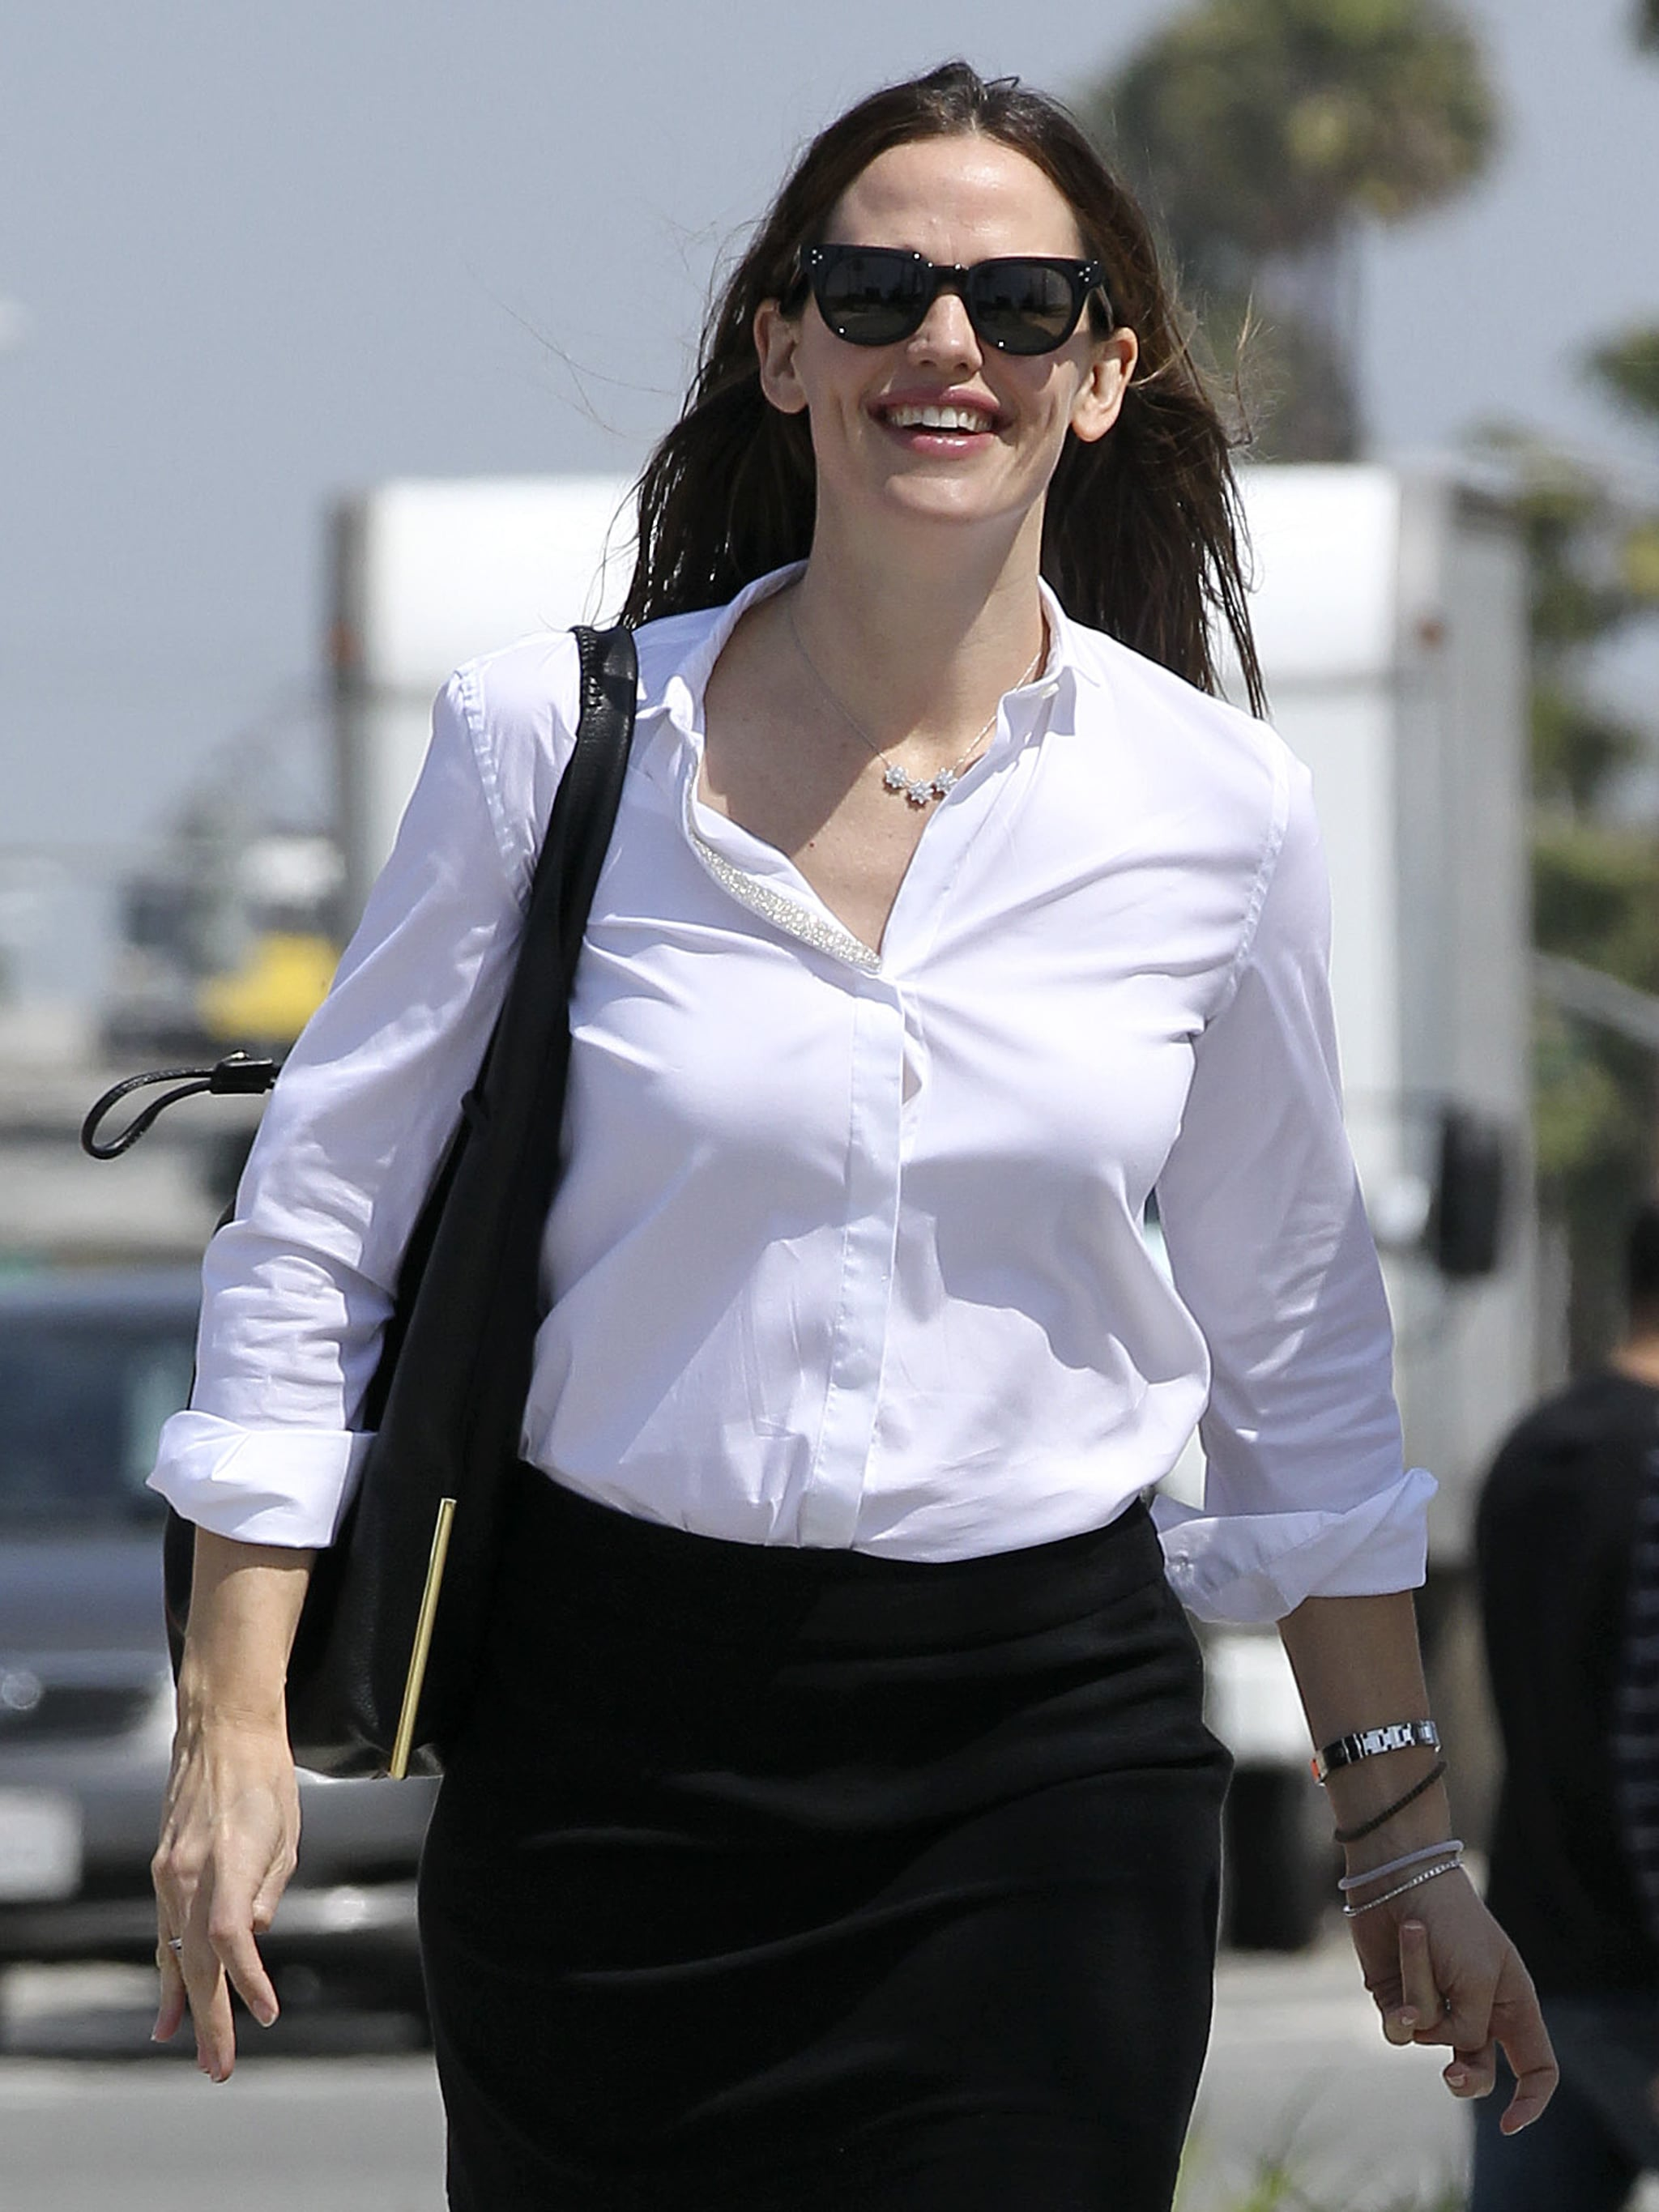 Jennifer Garner smiled on her way to a meeting in LA.